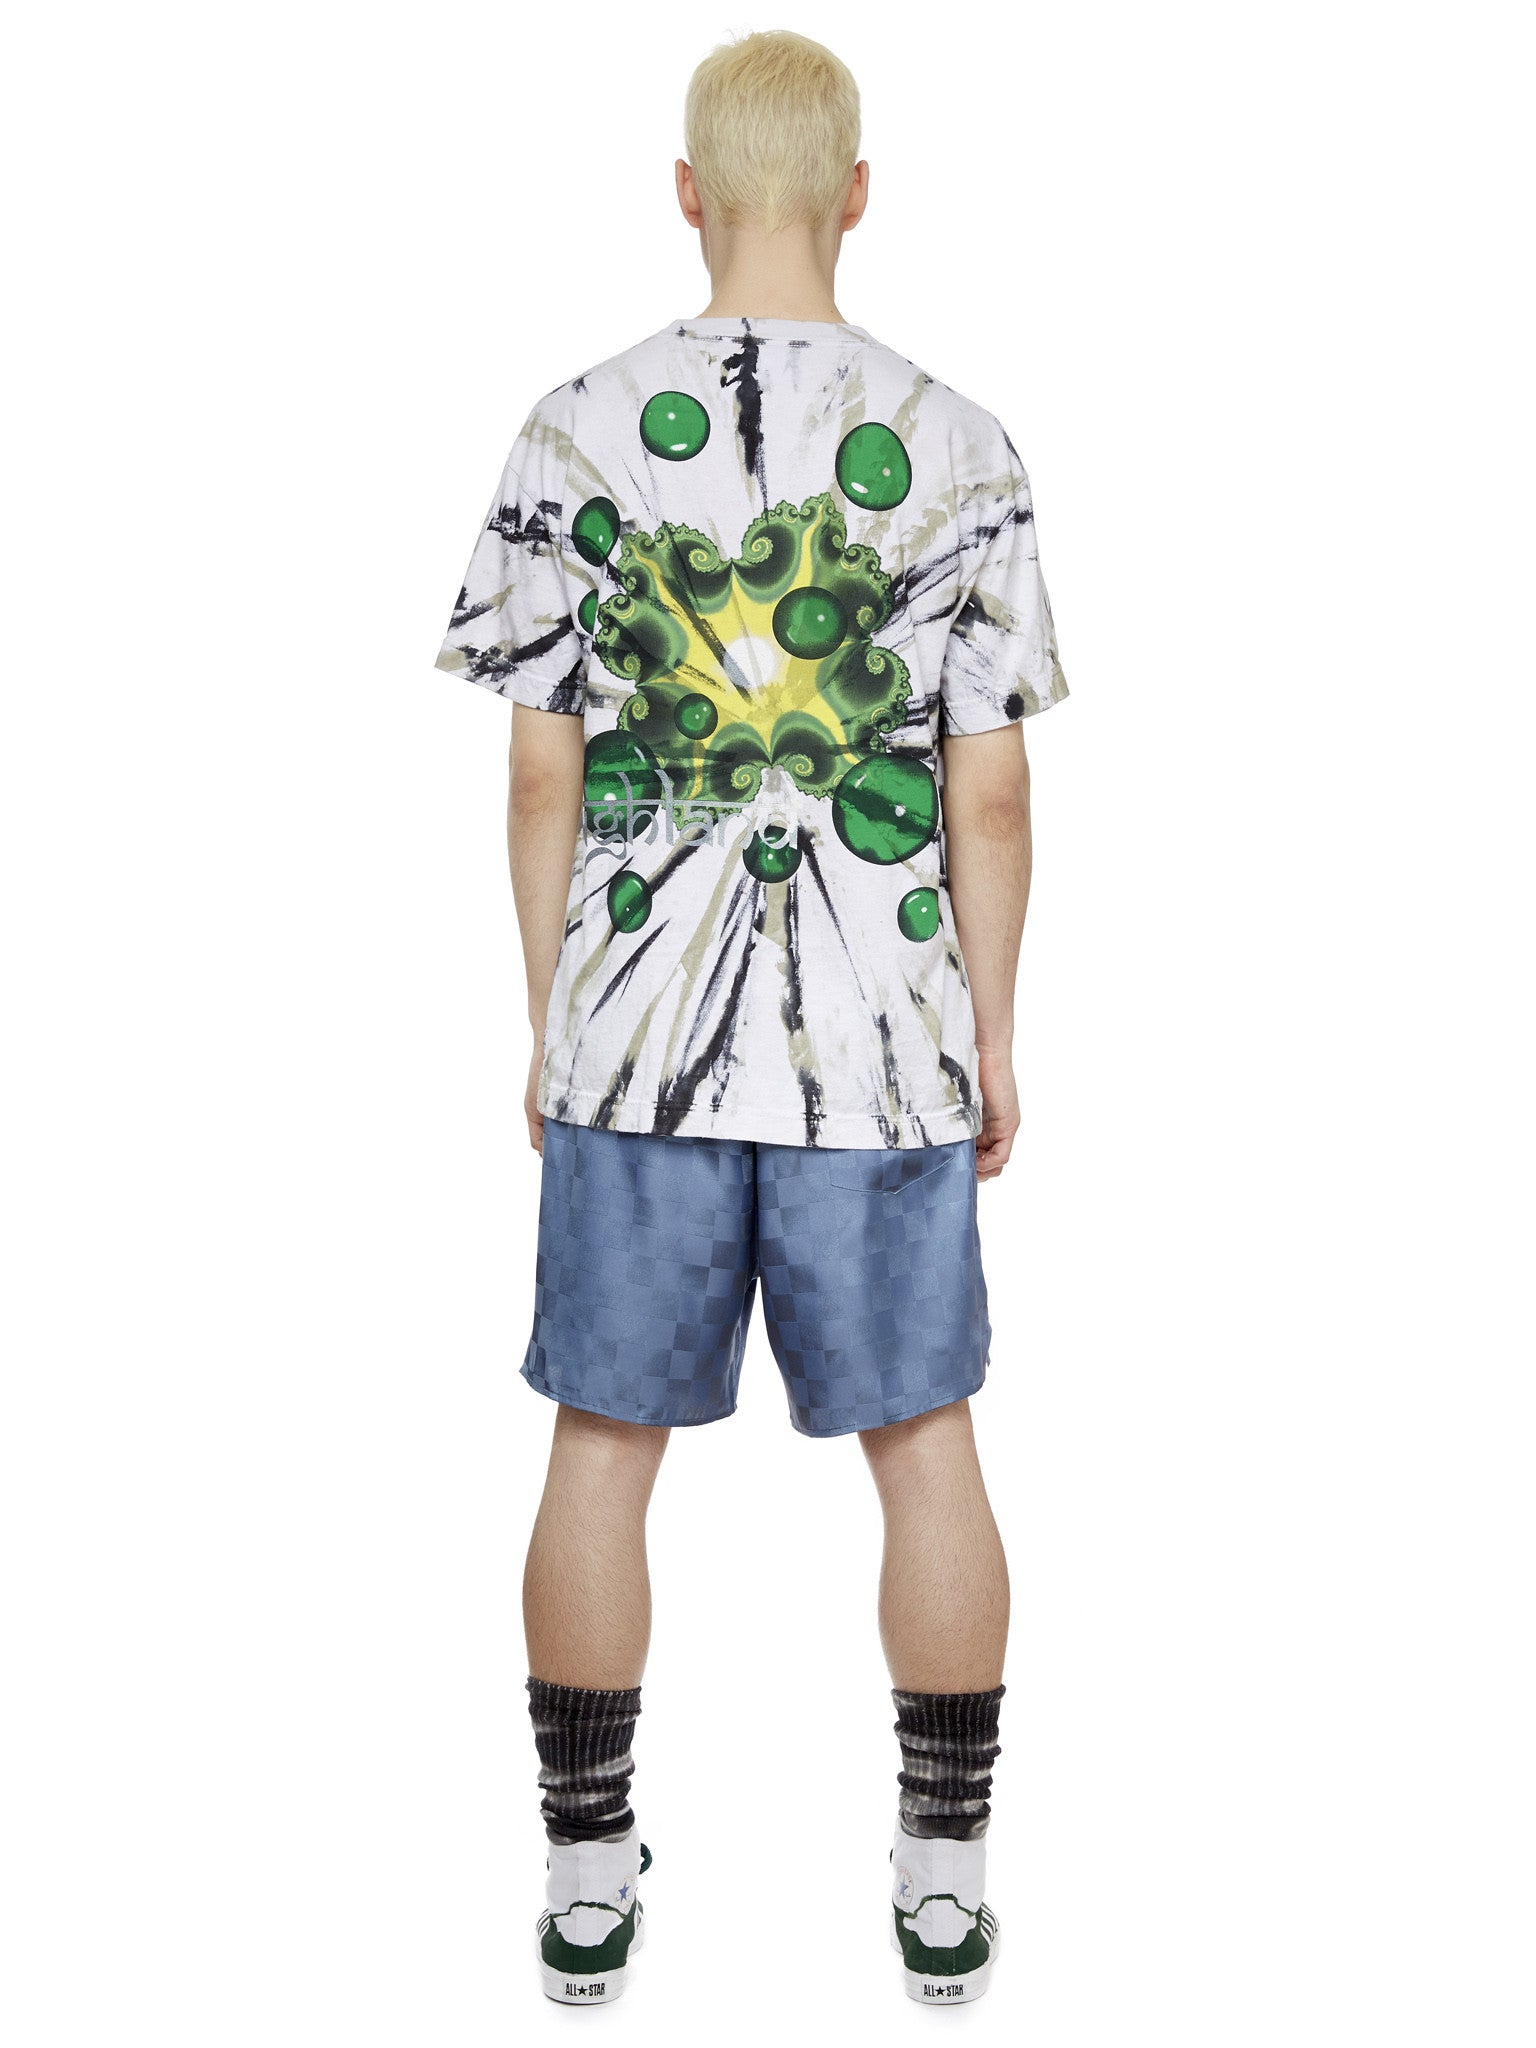 S/S Bubble T-Shirt in Green